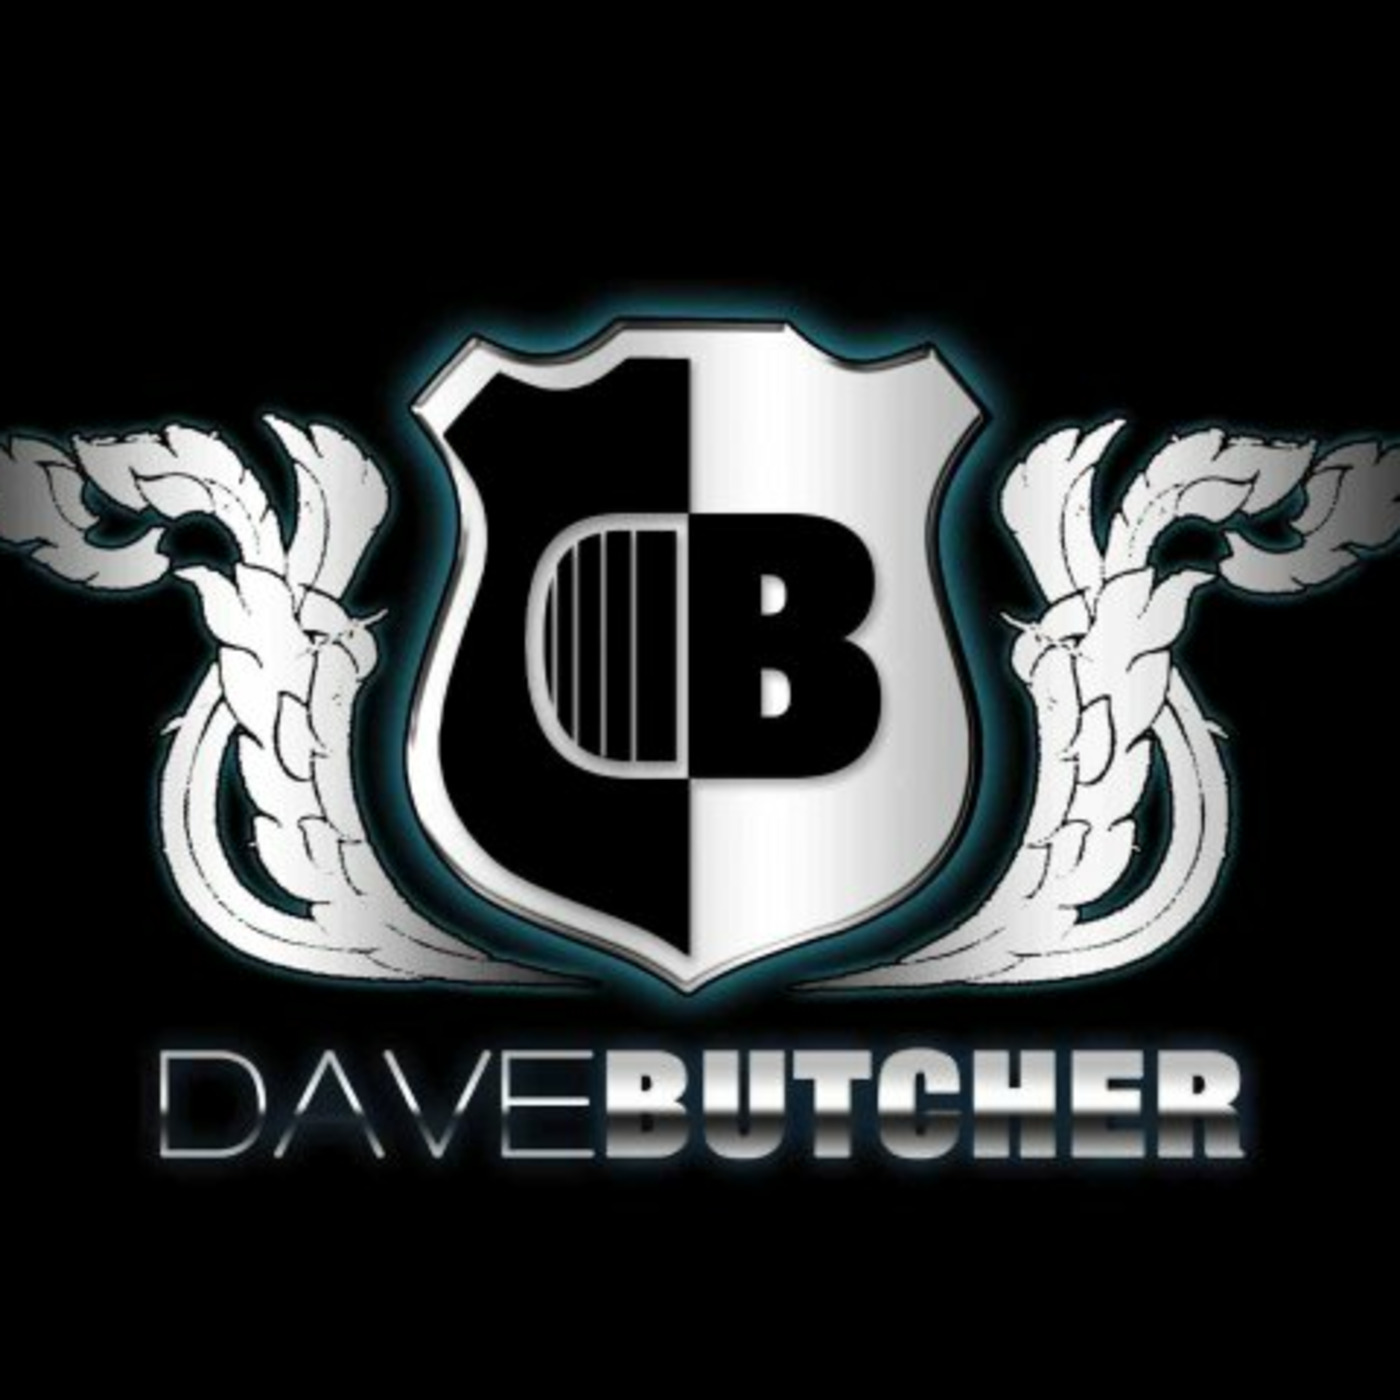 TWO YEARS OFF EP002 // CODE // PROMO MIX Dave Butcher podcast